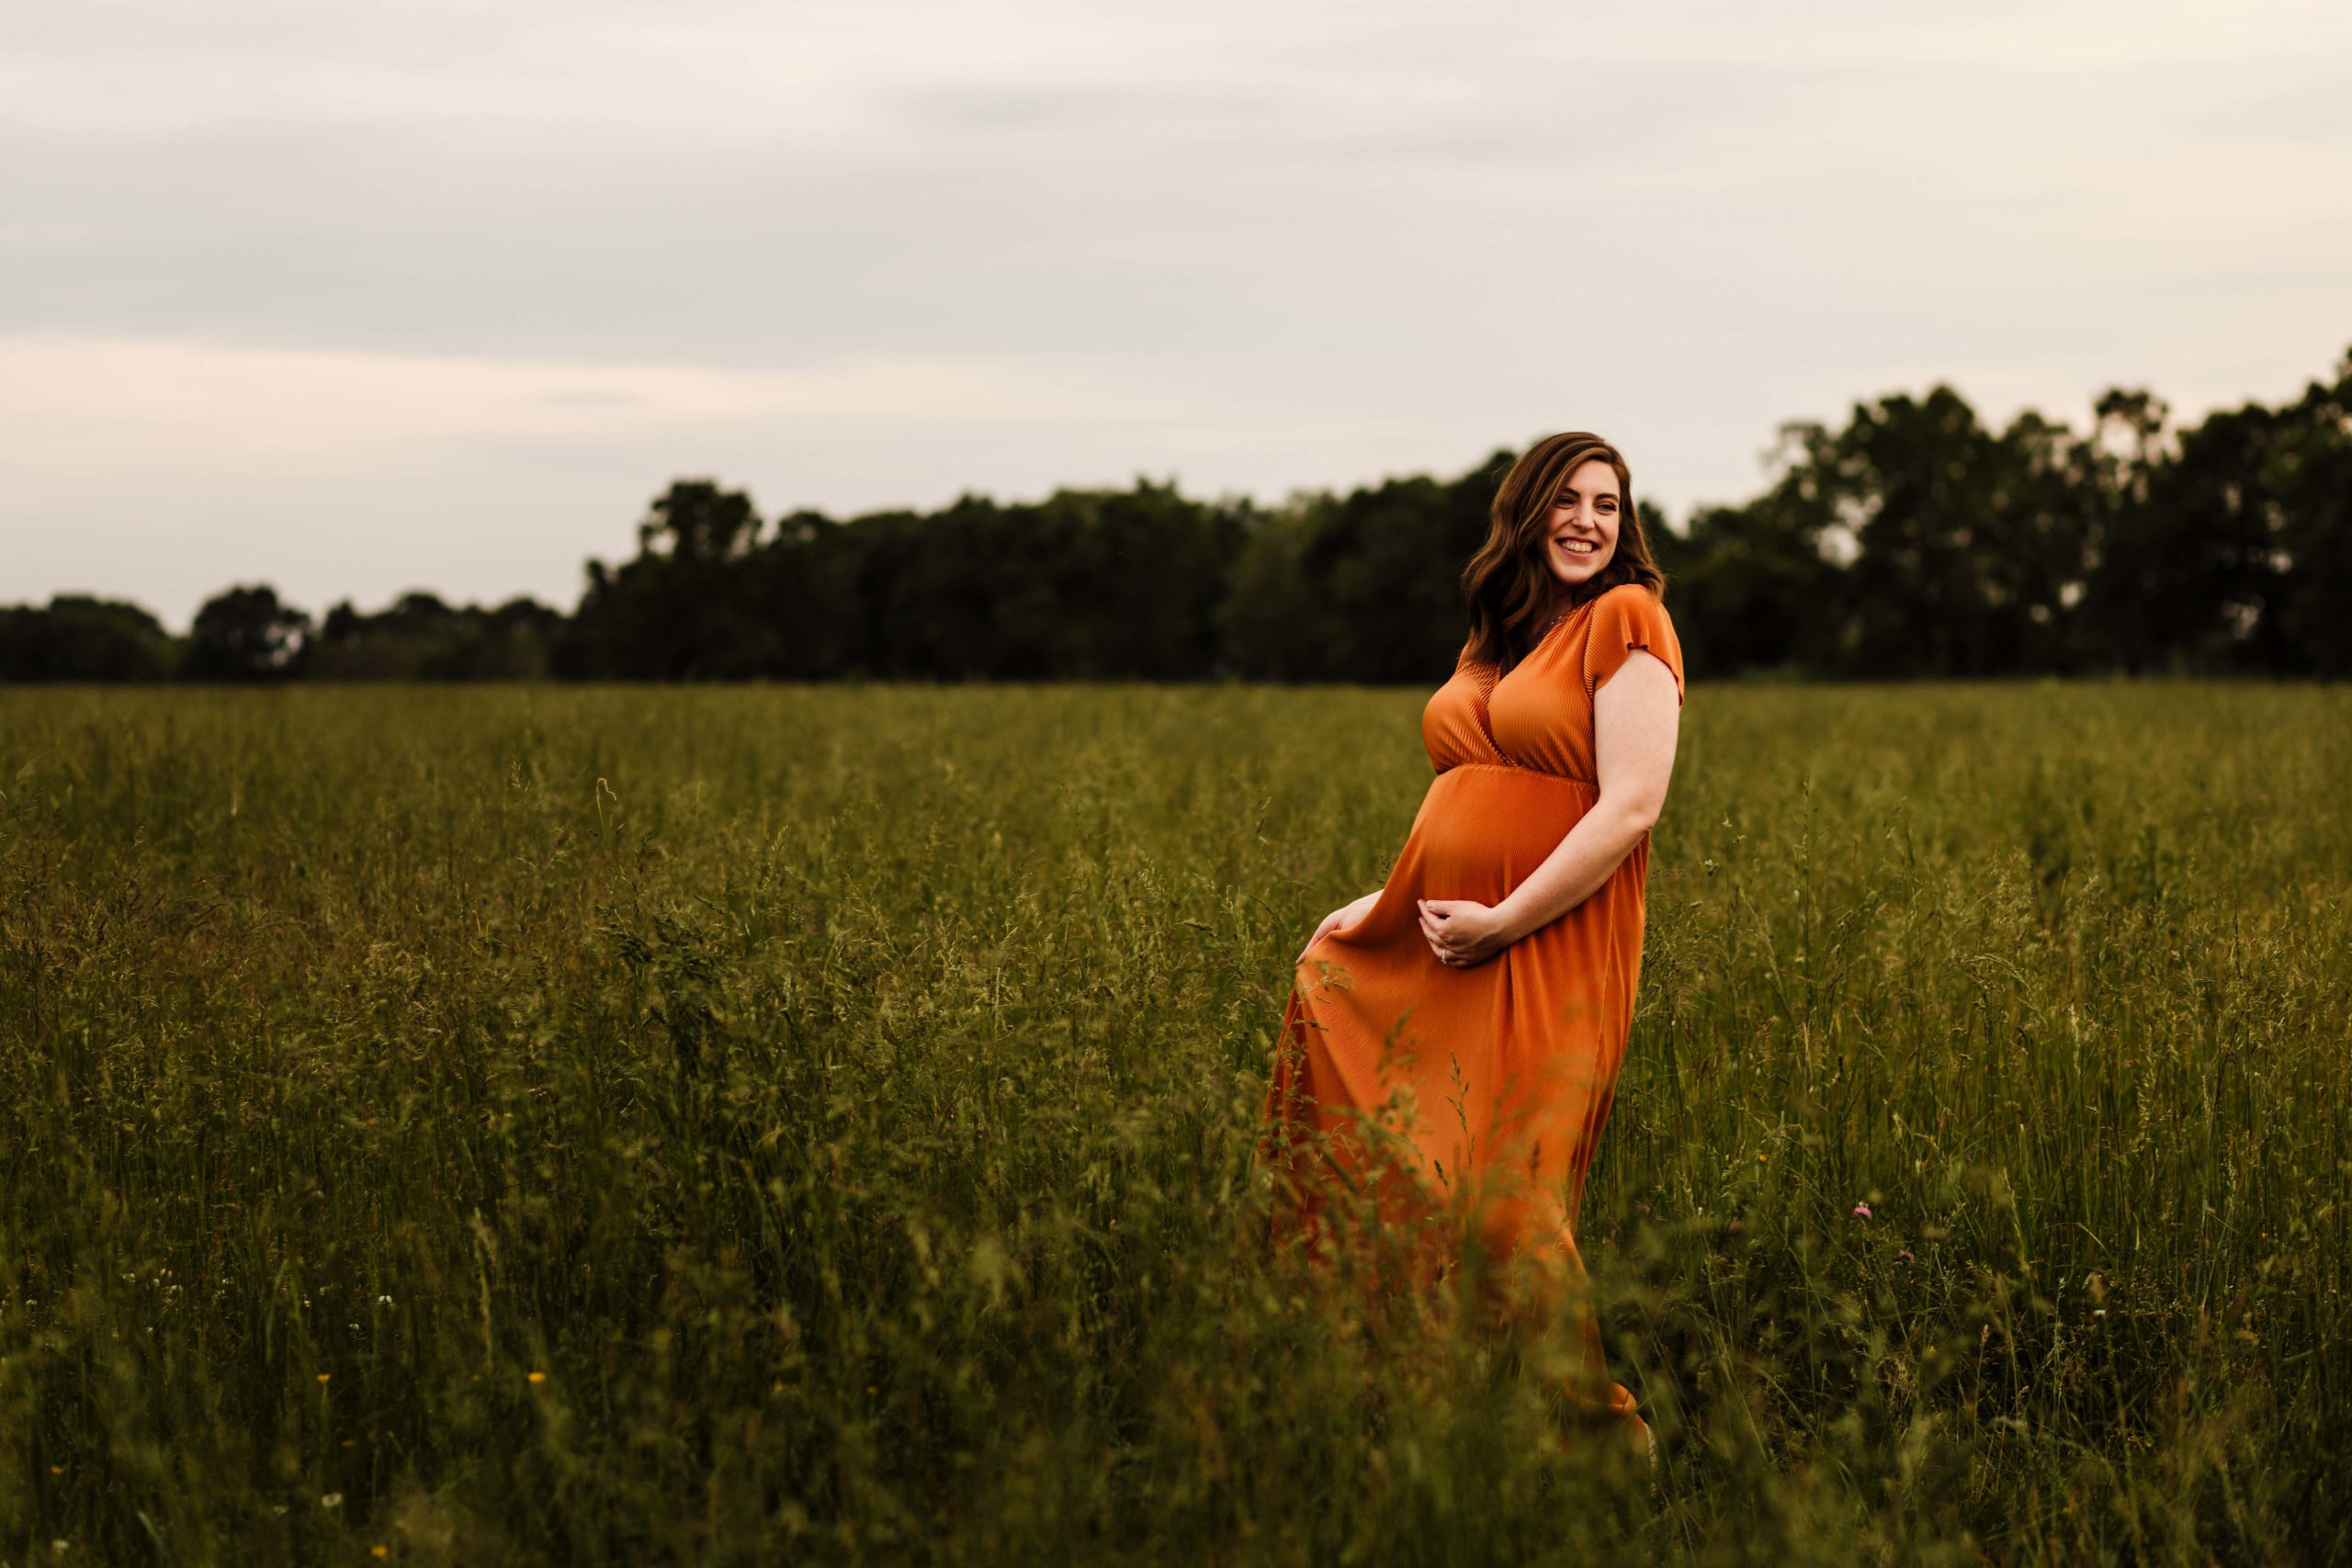 Pregnant woman standing in a tall grass field in a rust colored dress.